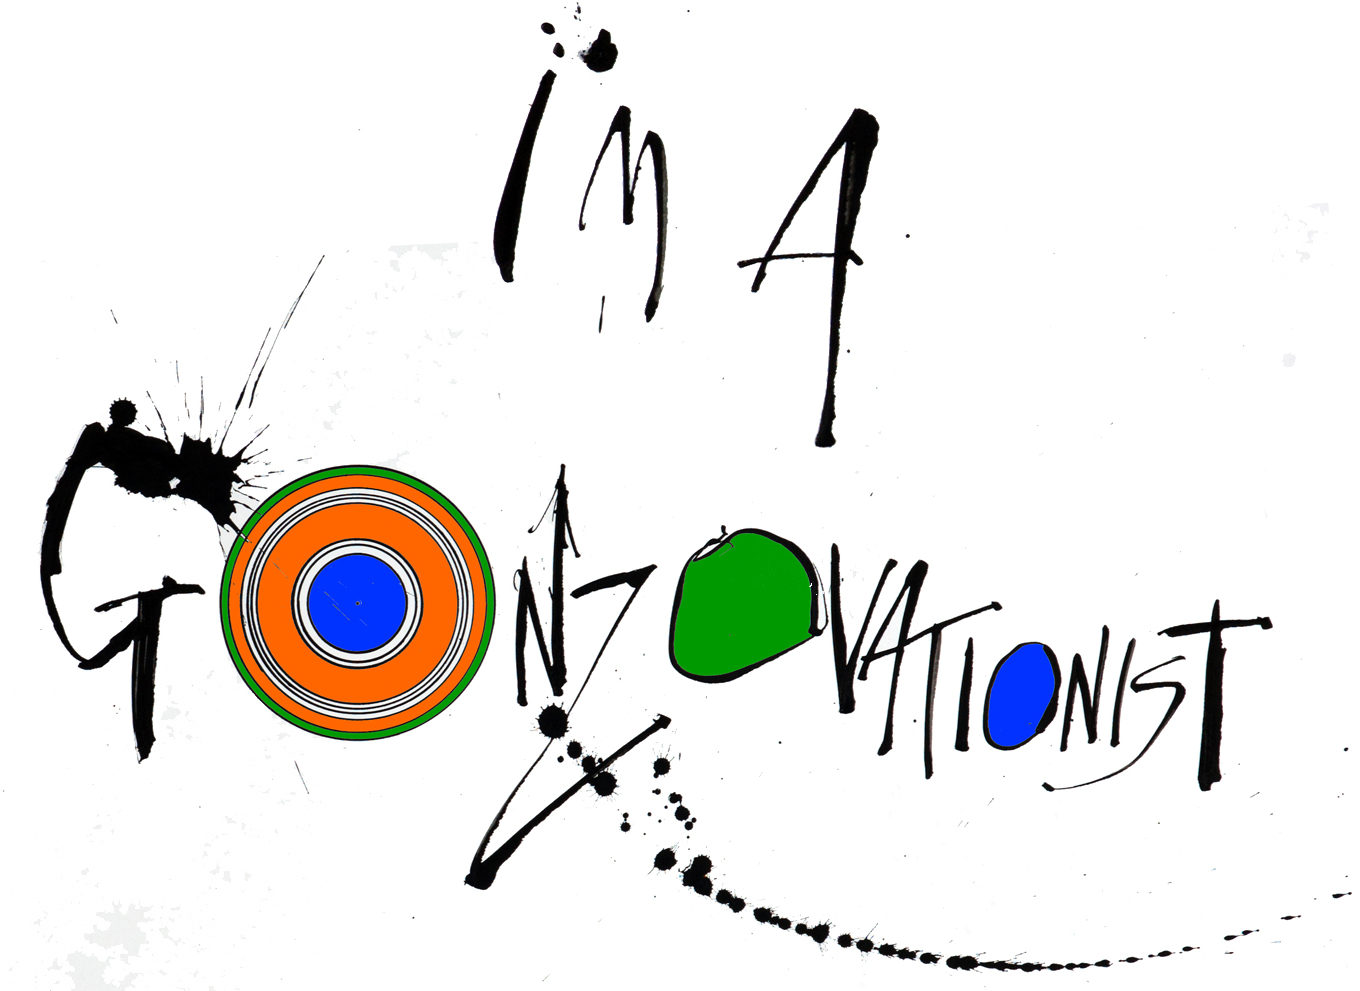 I'm a Gonzovationist lettering by Ralph Steadman